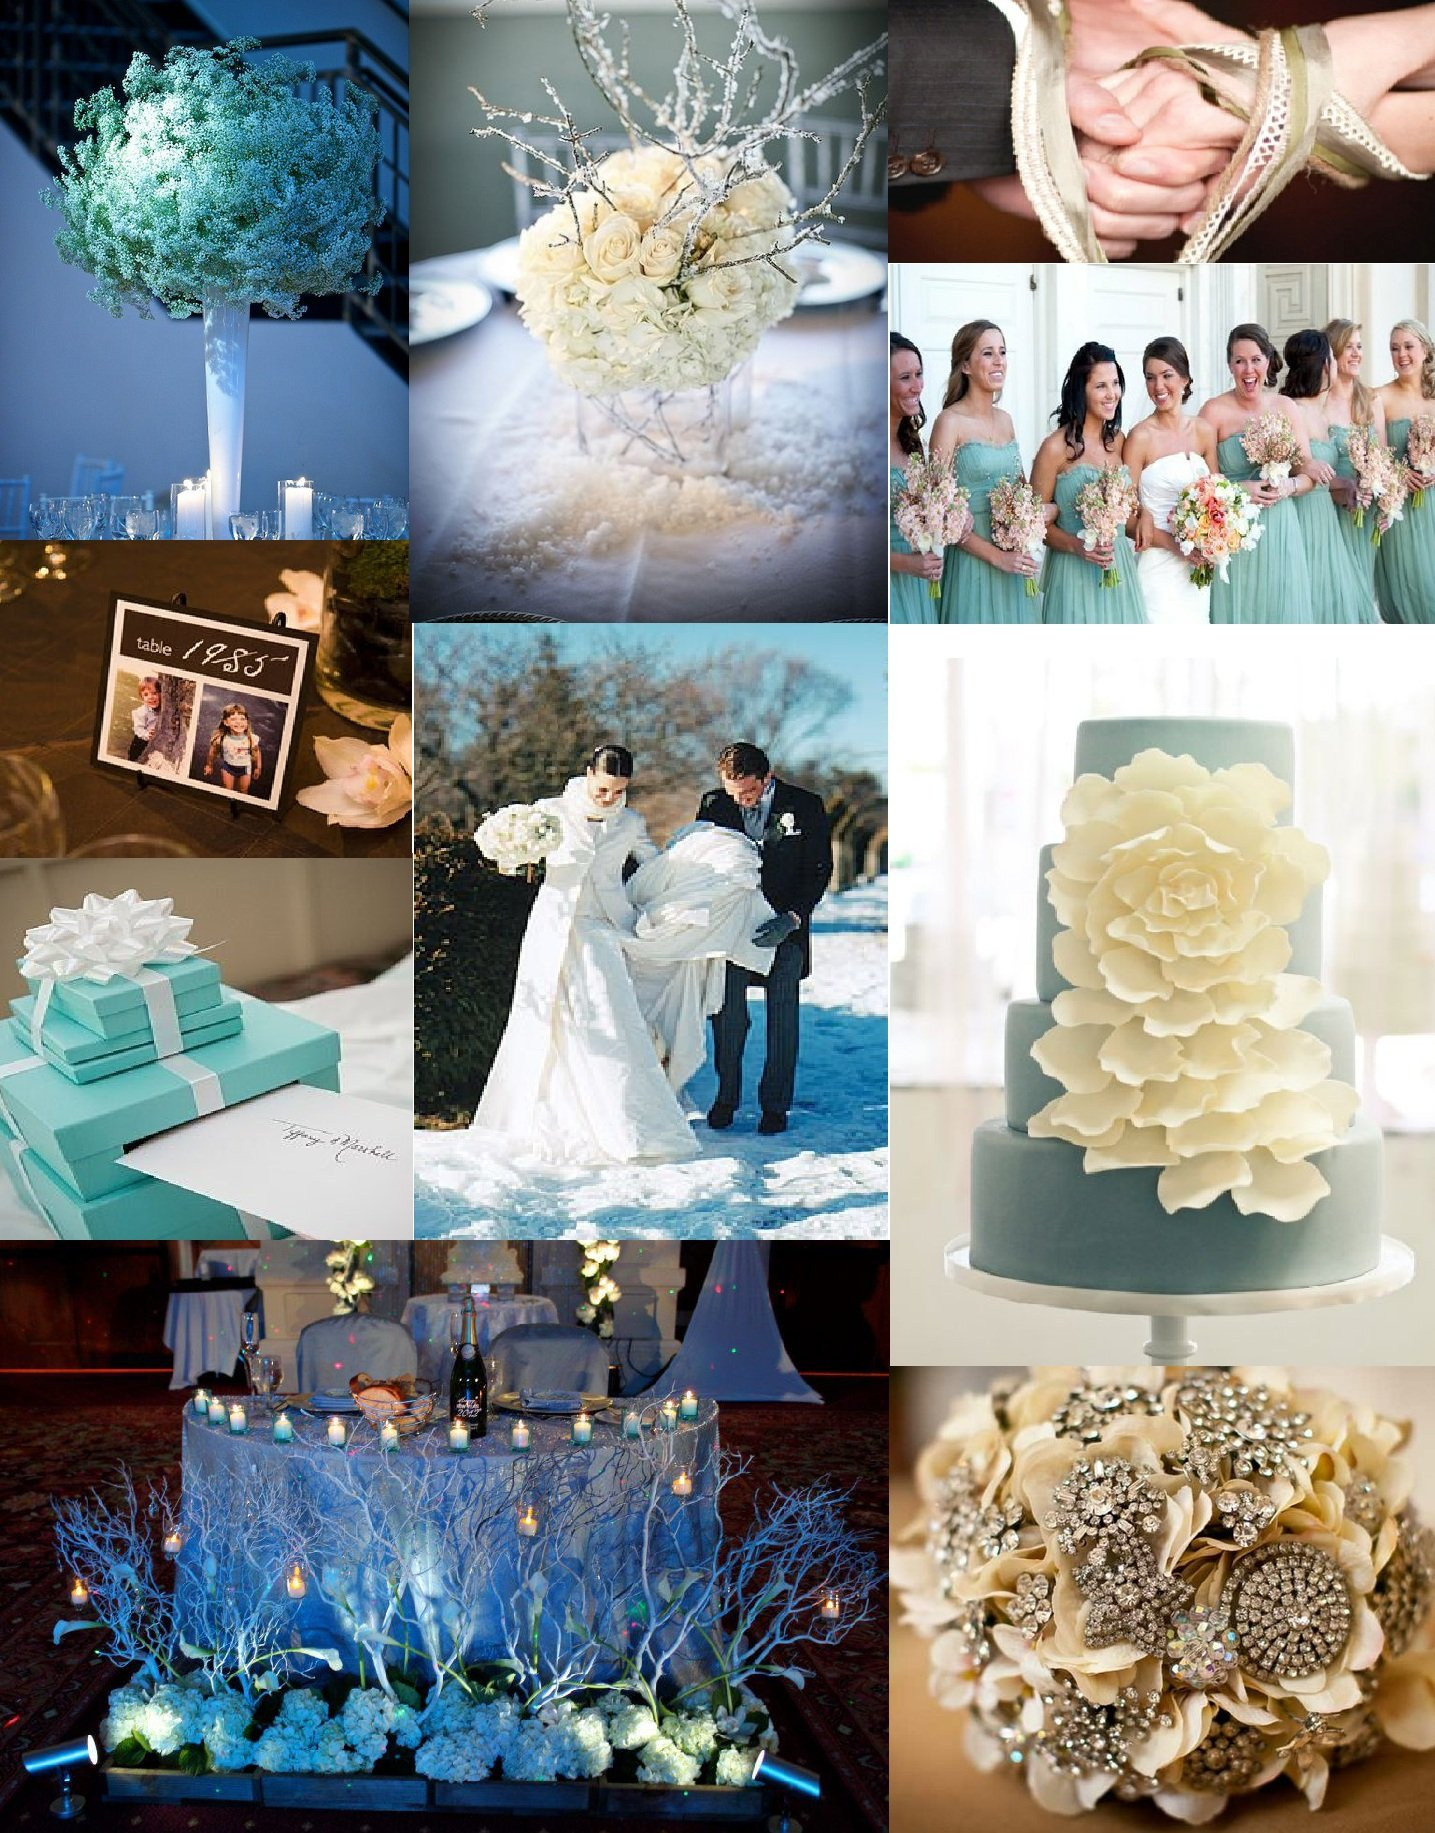 2 Bride And Bridesmaids Stylemepretty 3 Place Card Table Gallery Weddingbee 4 Tiffany Blue Wedding Cake Savethedateevents